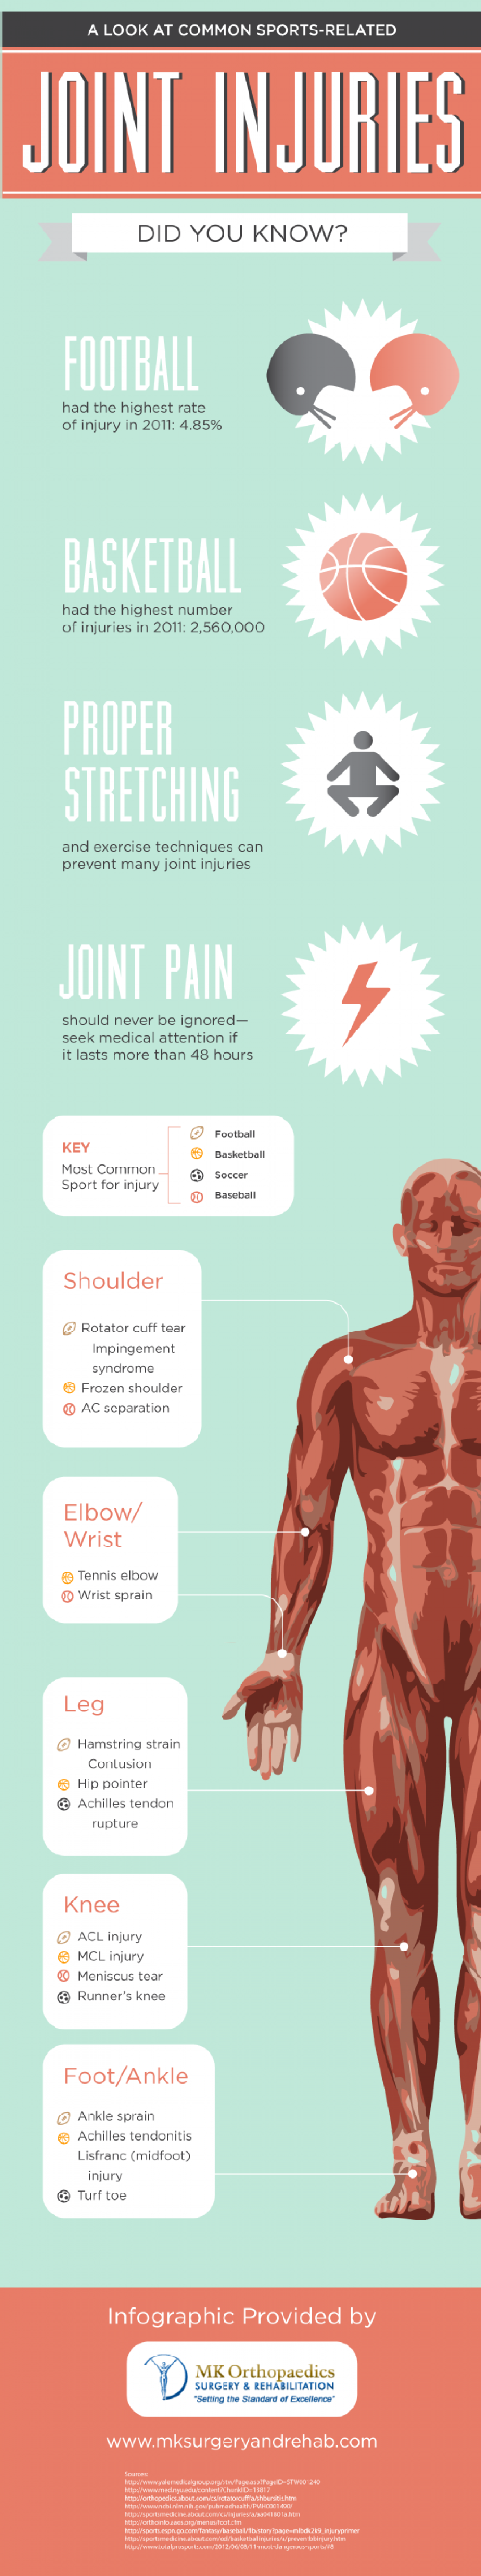 A Look at Common Sports-Related Joint Injuries Infographic